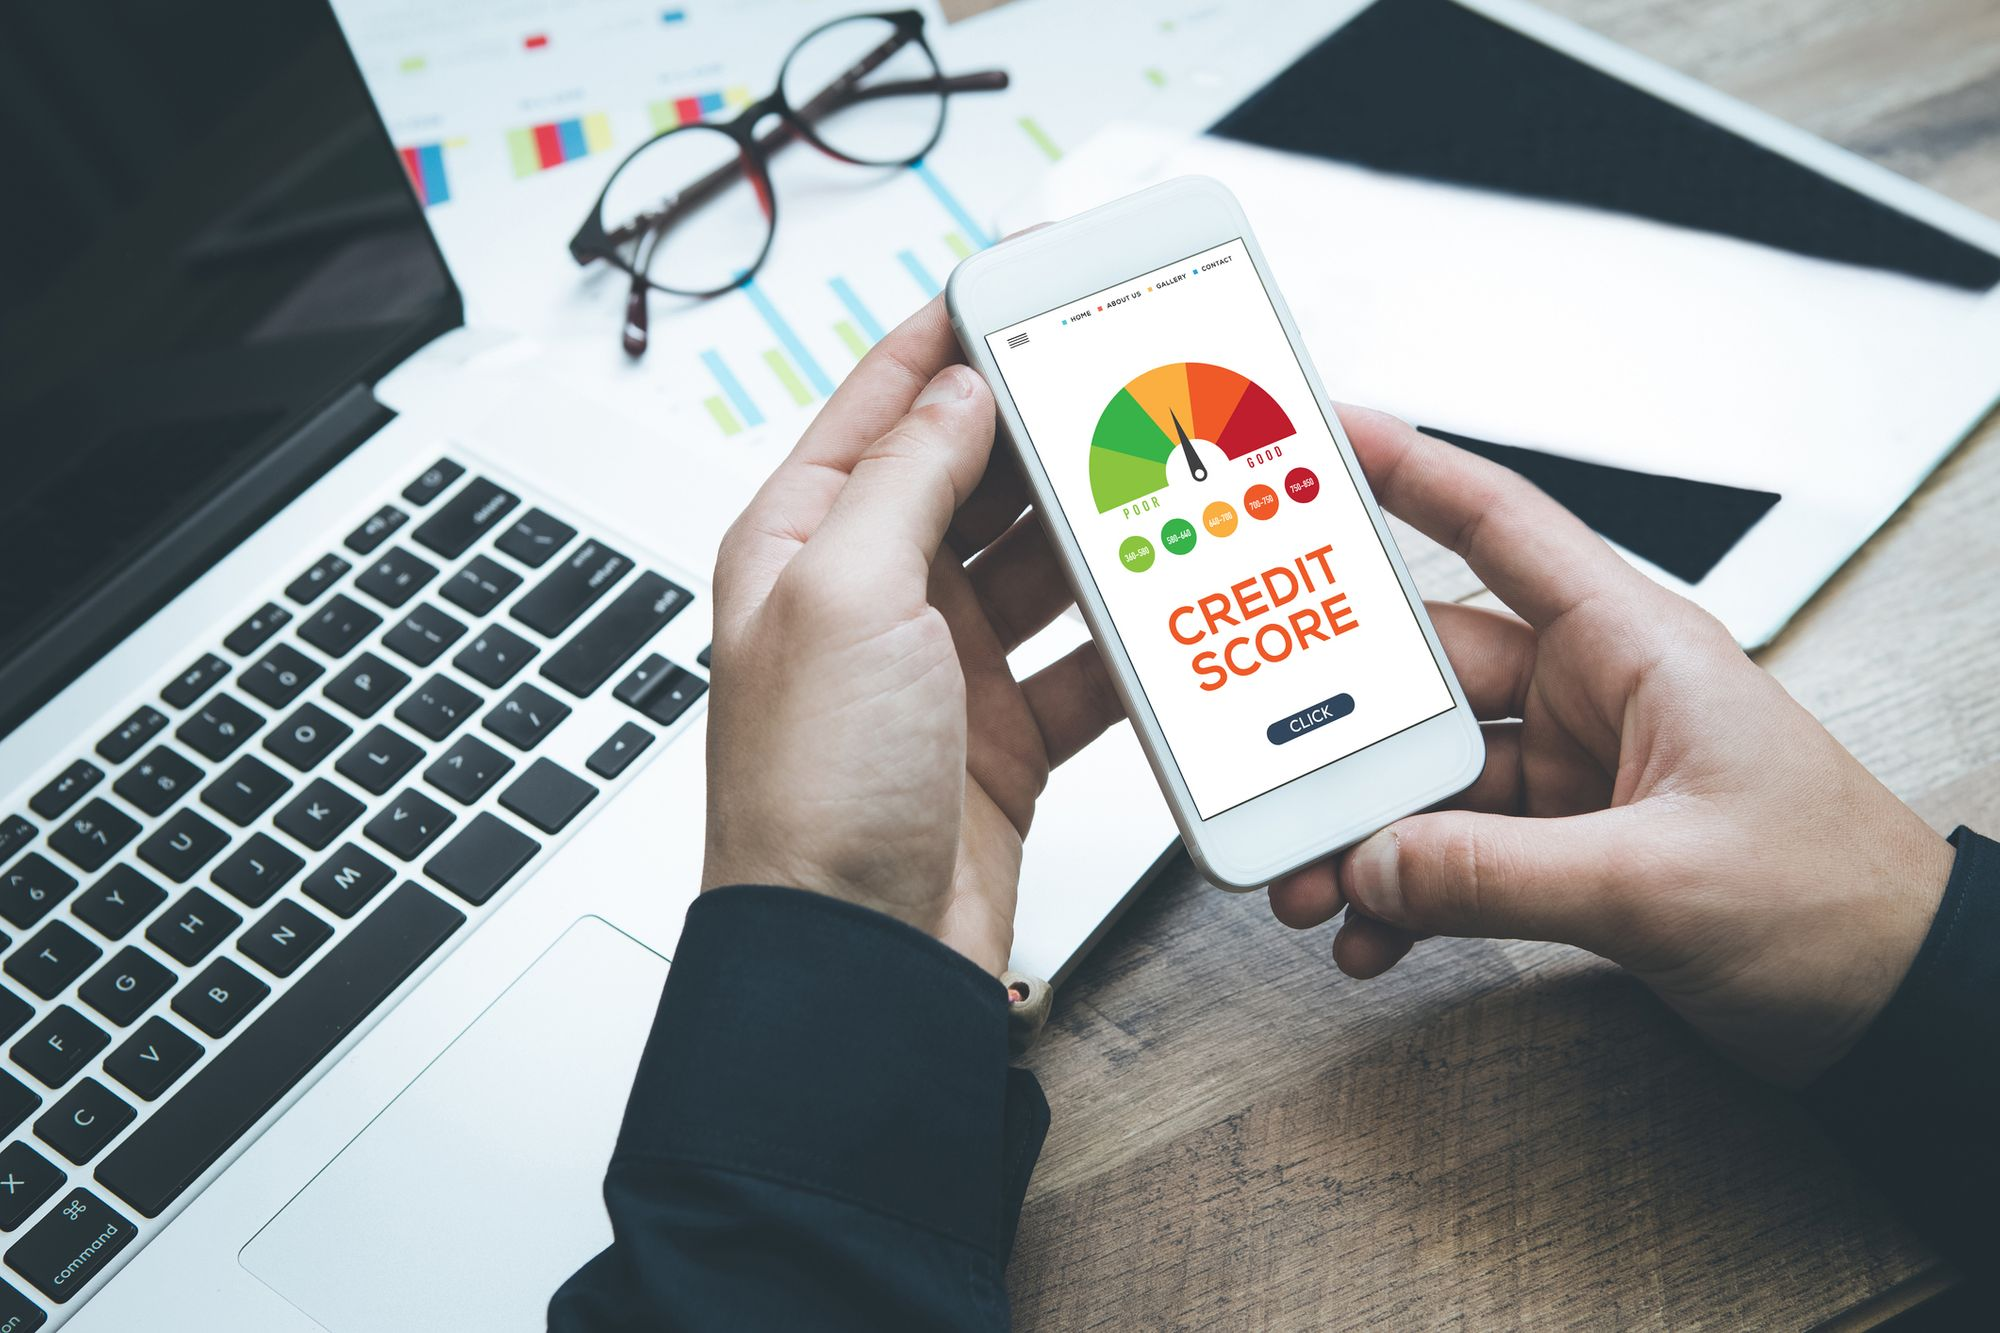 3 Tips to Strengthen and Protect Your Credit Score